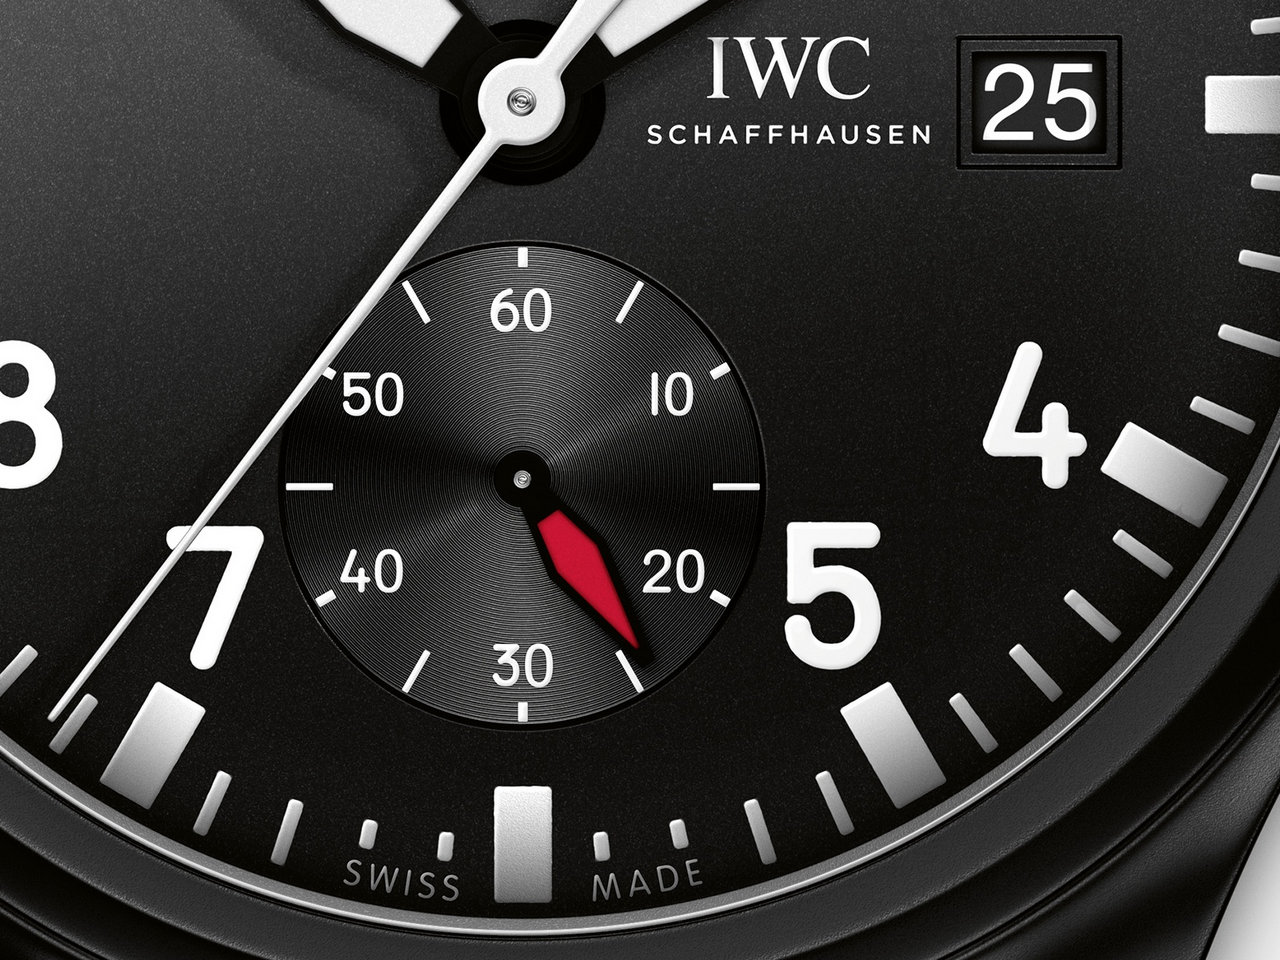 SIHH-2016-IWC Big-Pilot-Watch-Chronograph-TOP-GUN-ref-IW389001-0-100_2